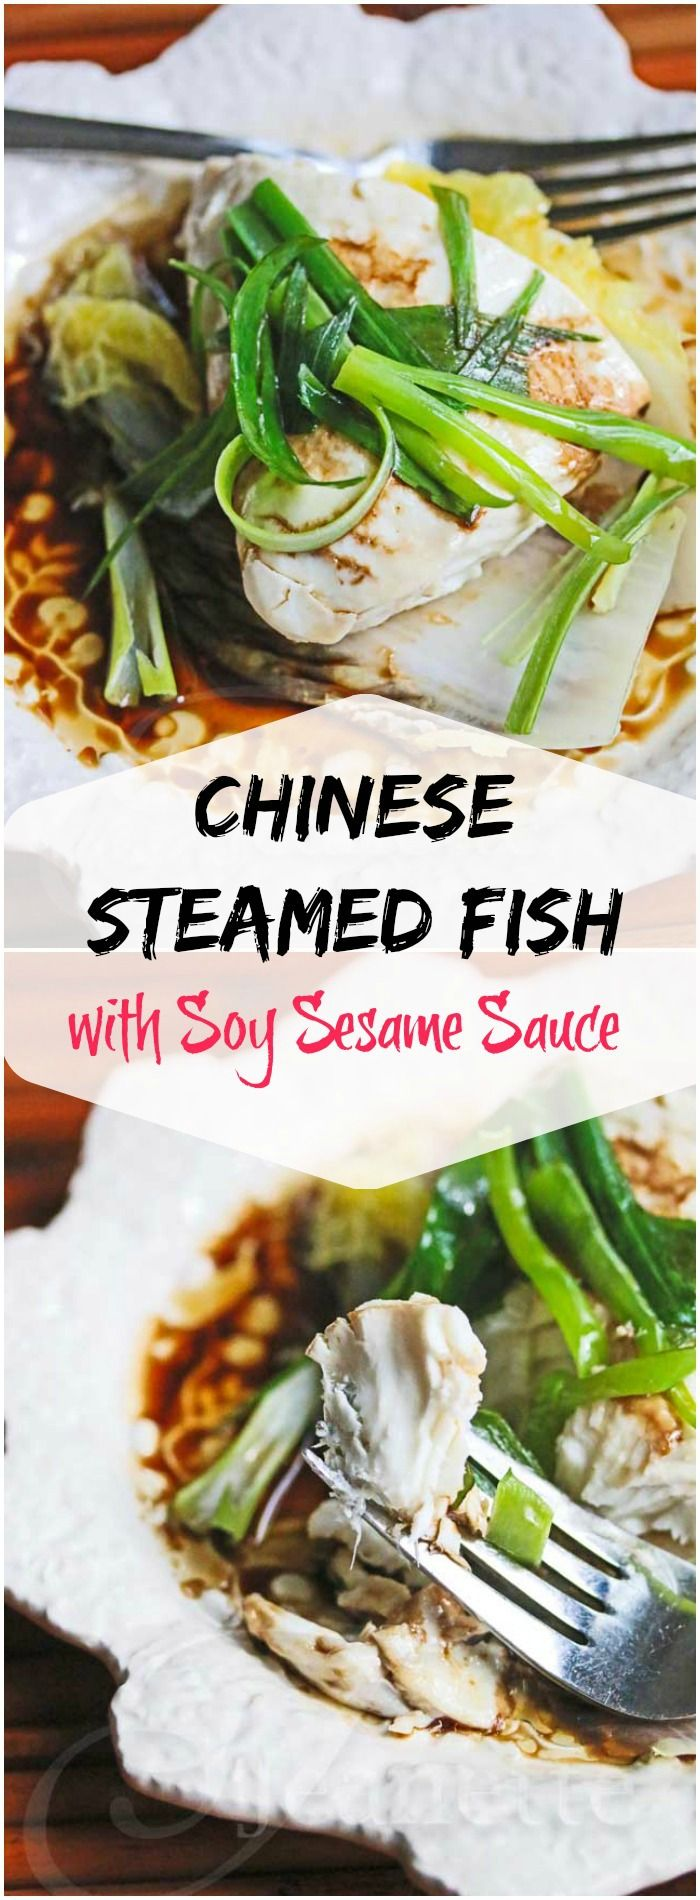 25 best ideas about steamed fish recipe on pinterest for Fish sauce ingredients